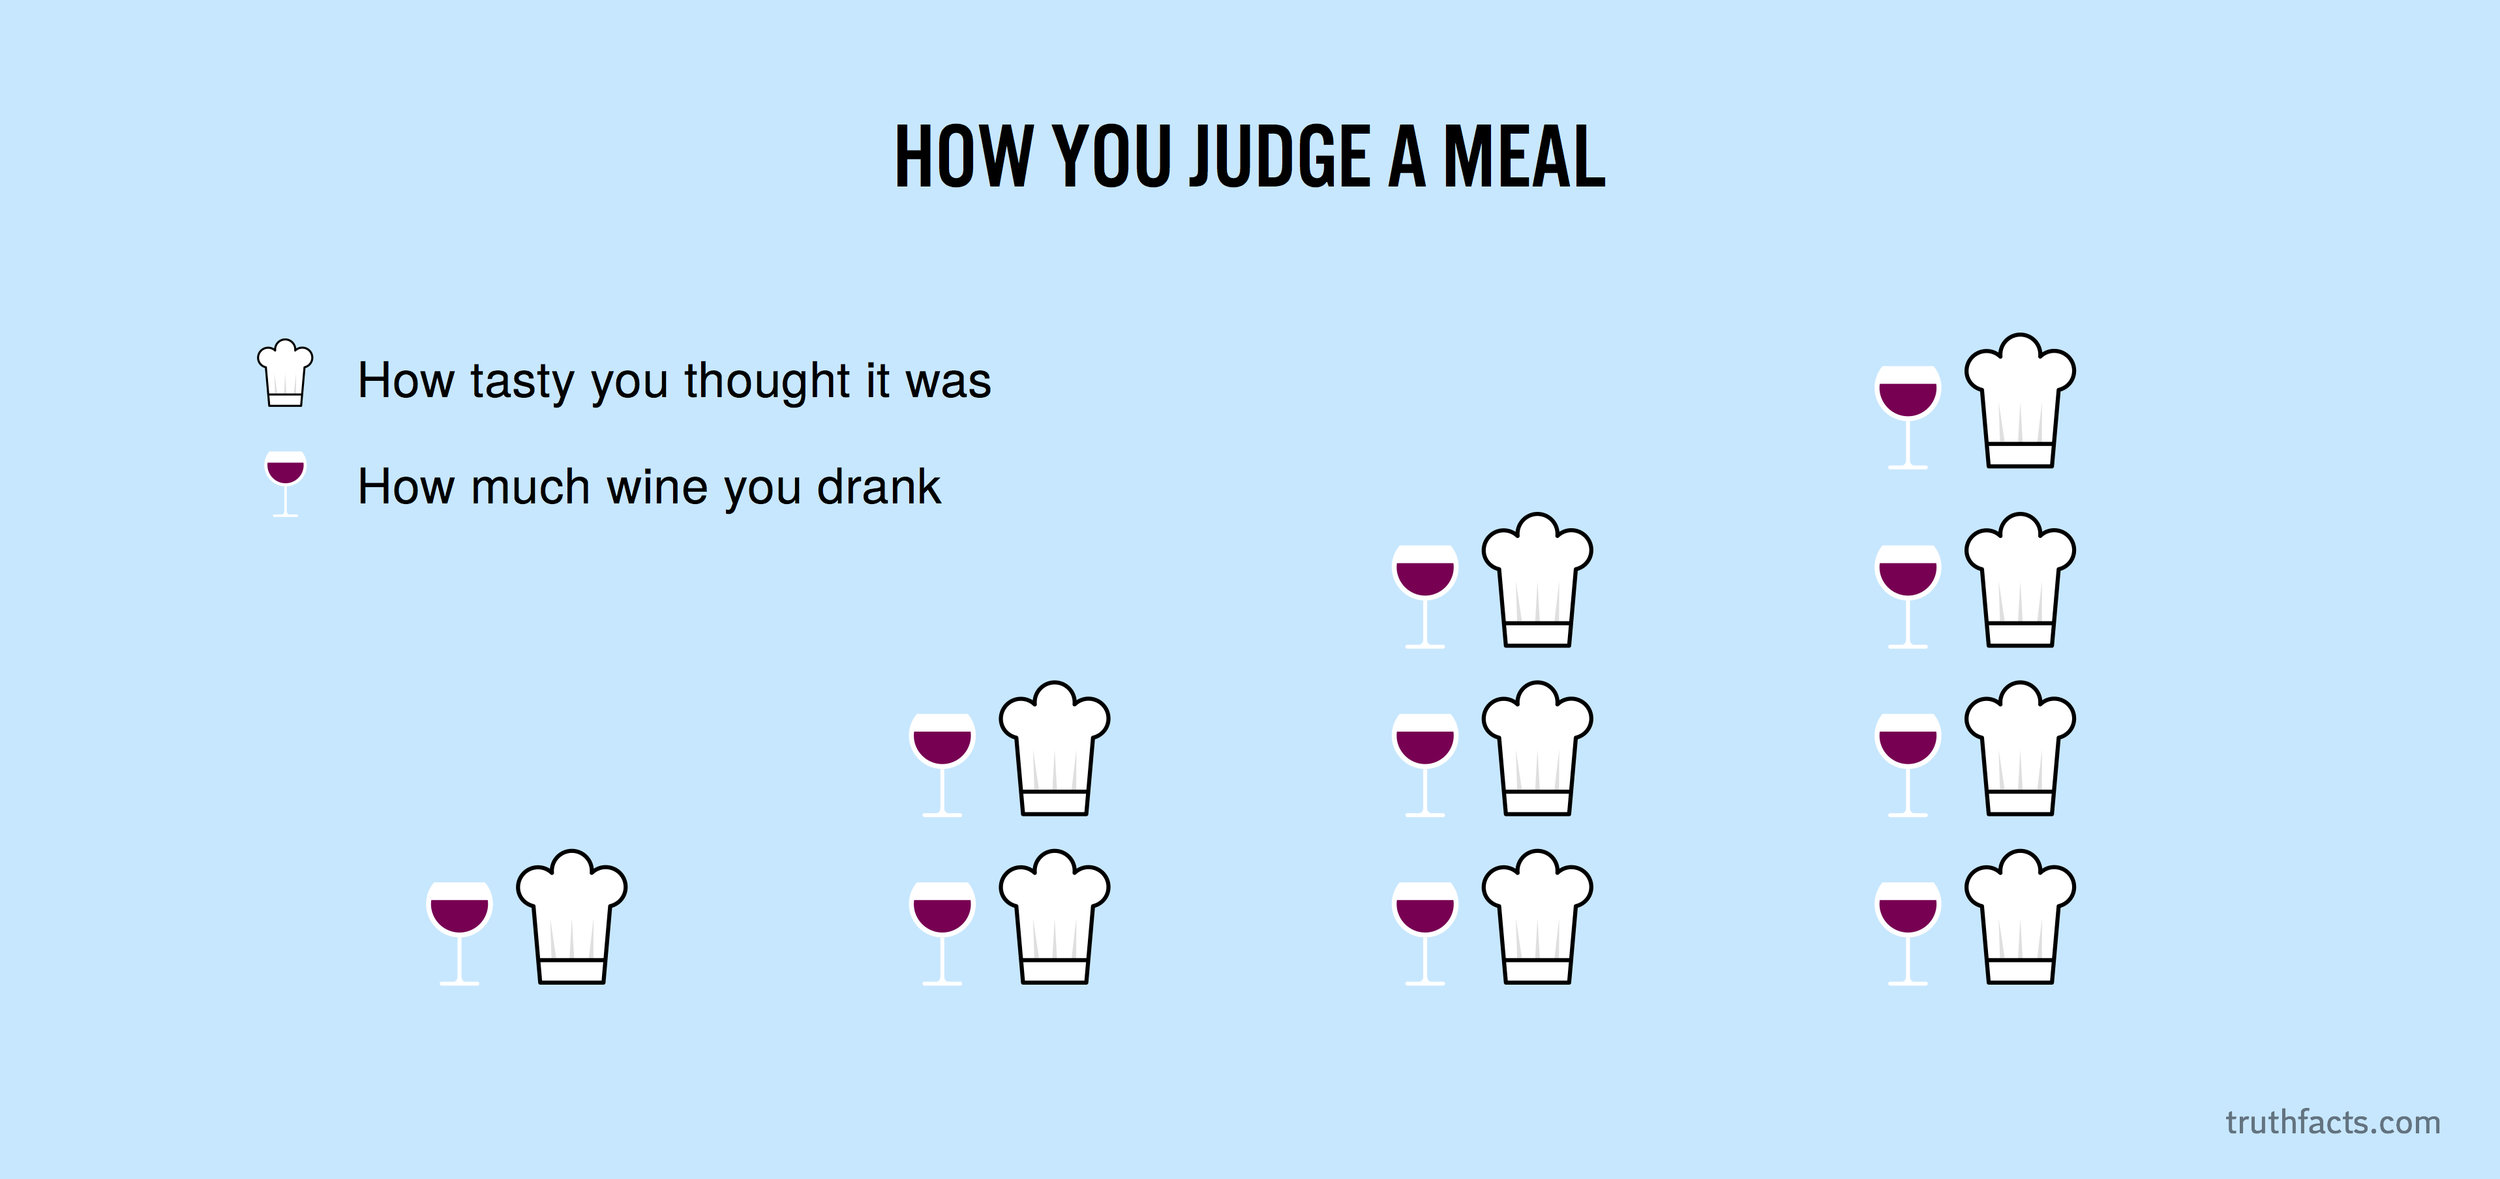 How you judge a meal